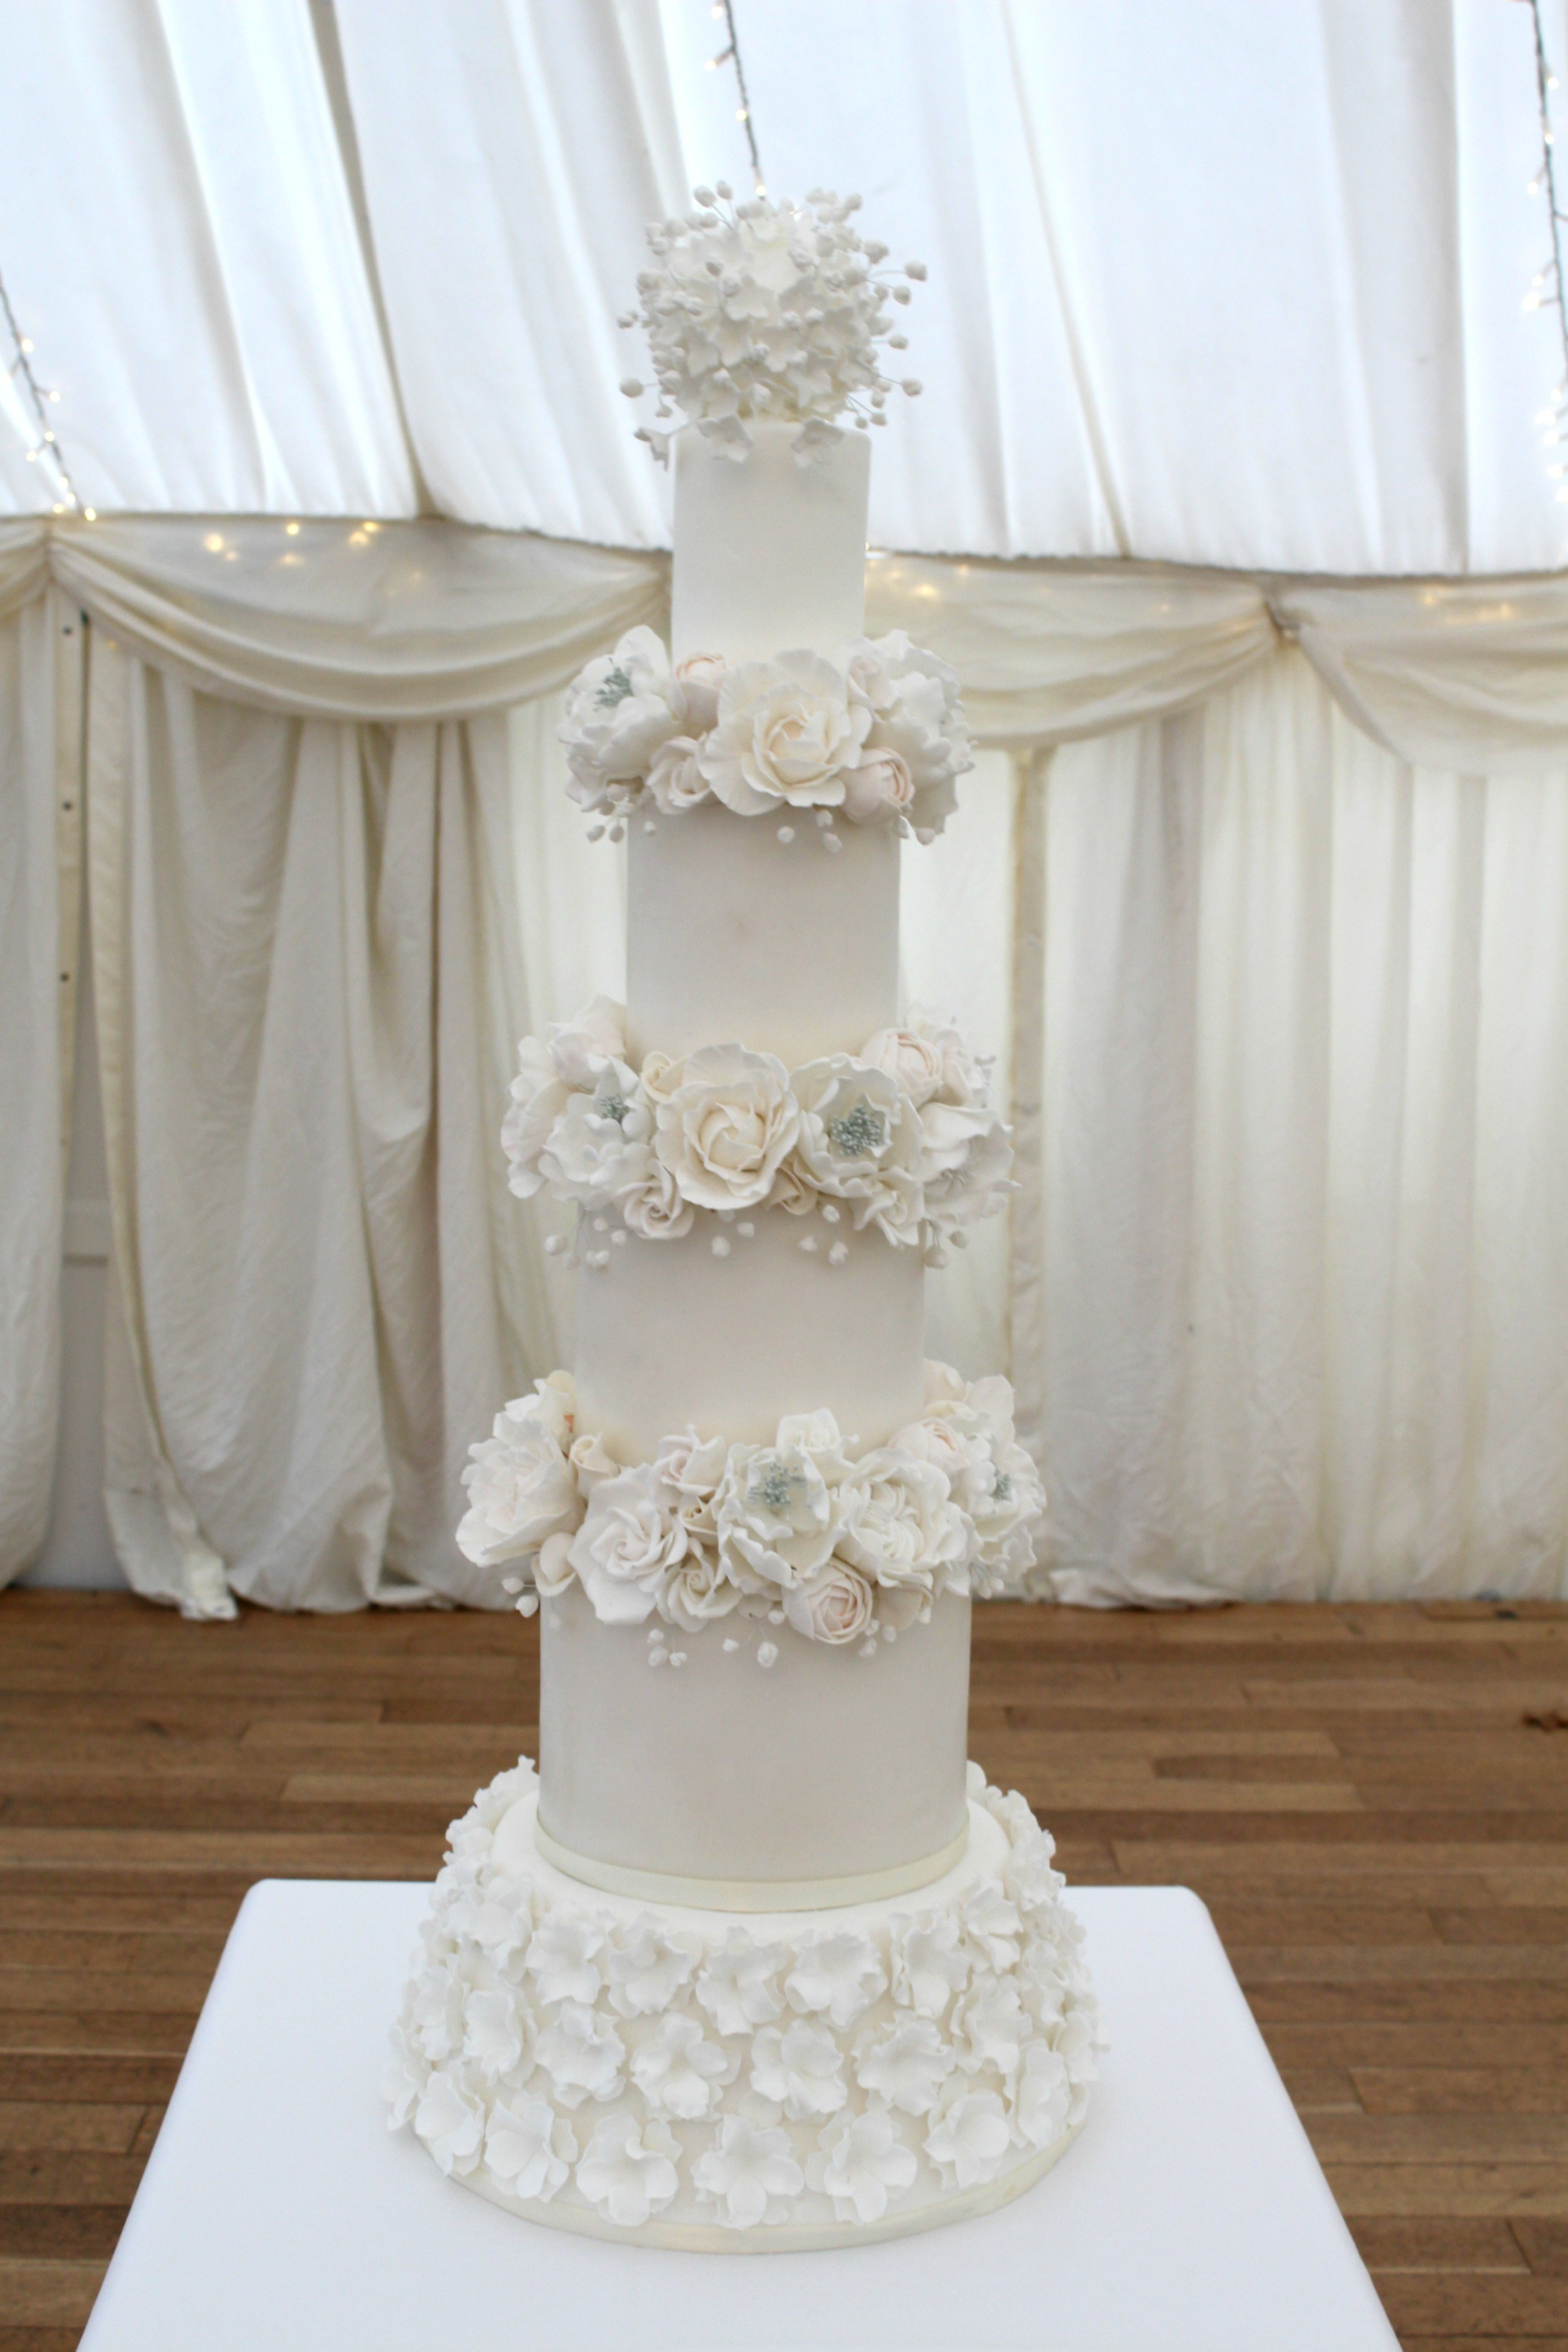 Ivory wedding cake with sugar flowers